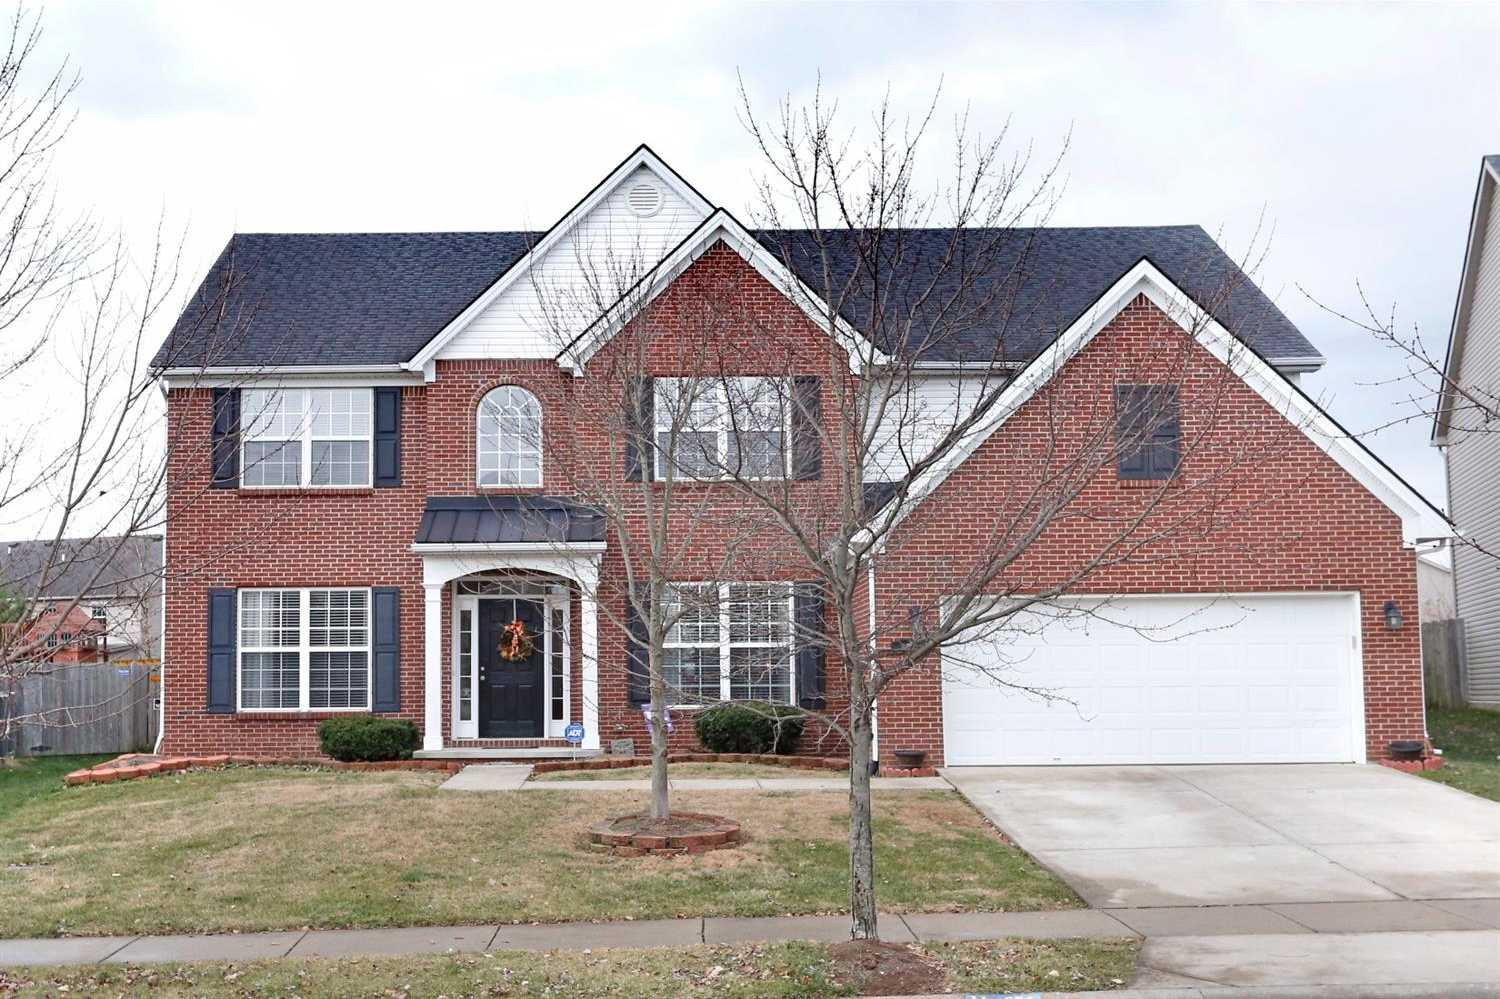 $320,000 - 4Br/3Ba -  for Sale in Chilesburg, Lexington